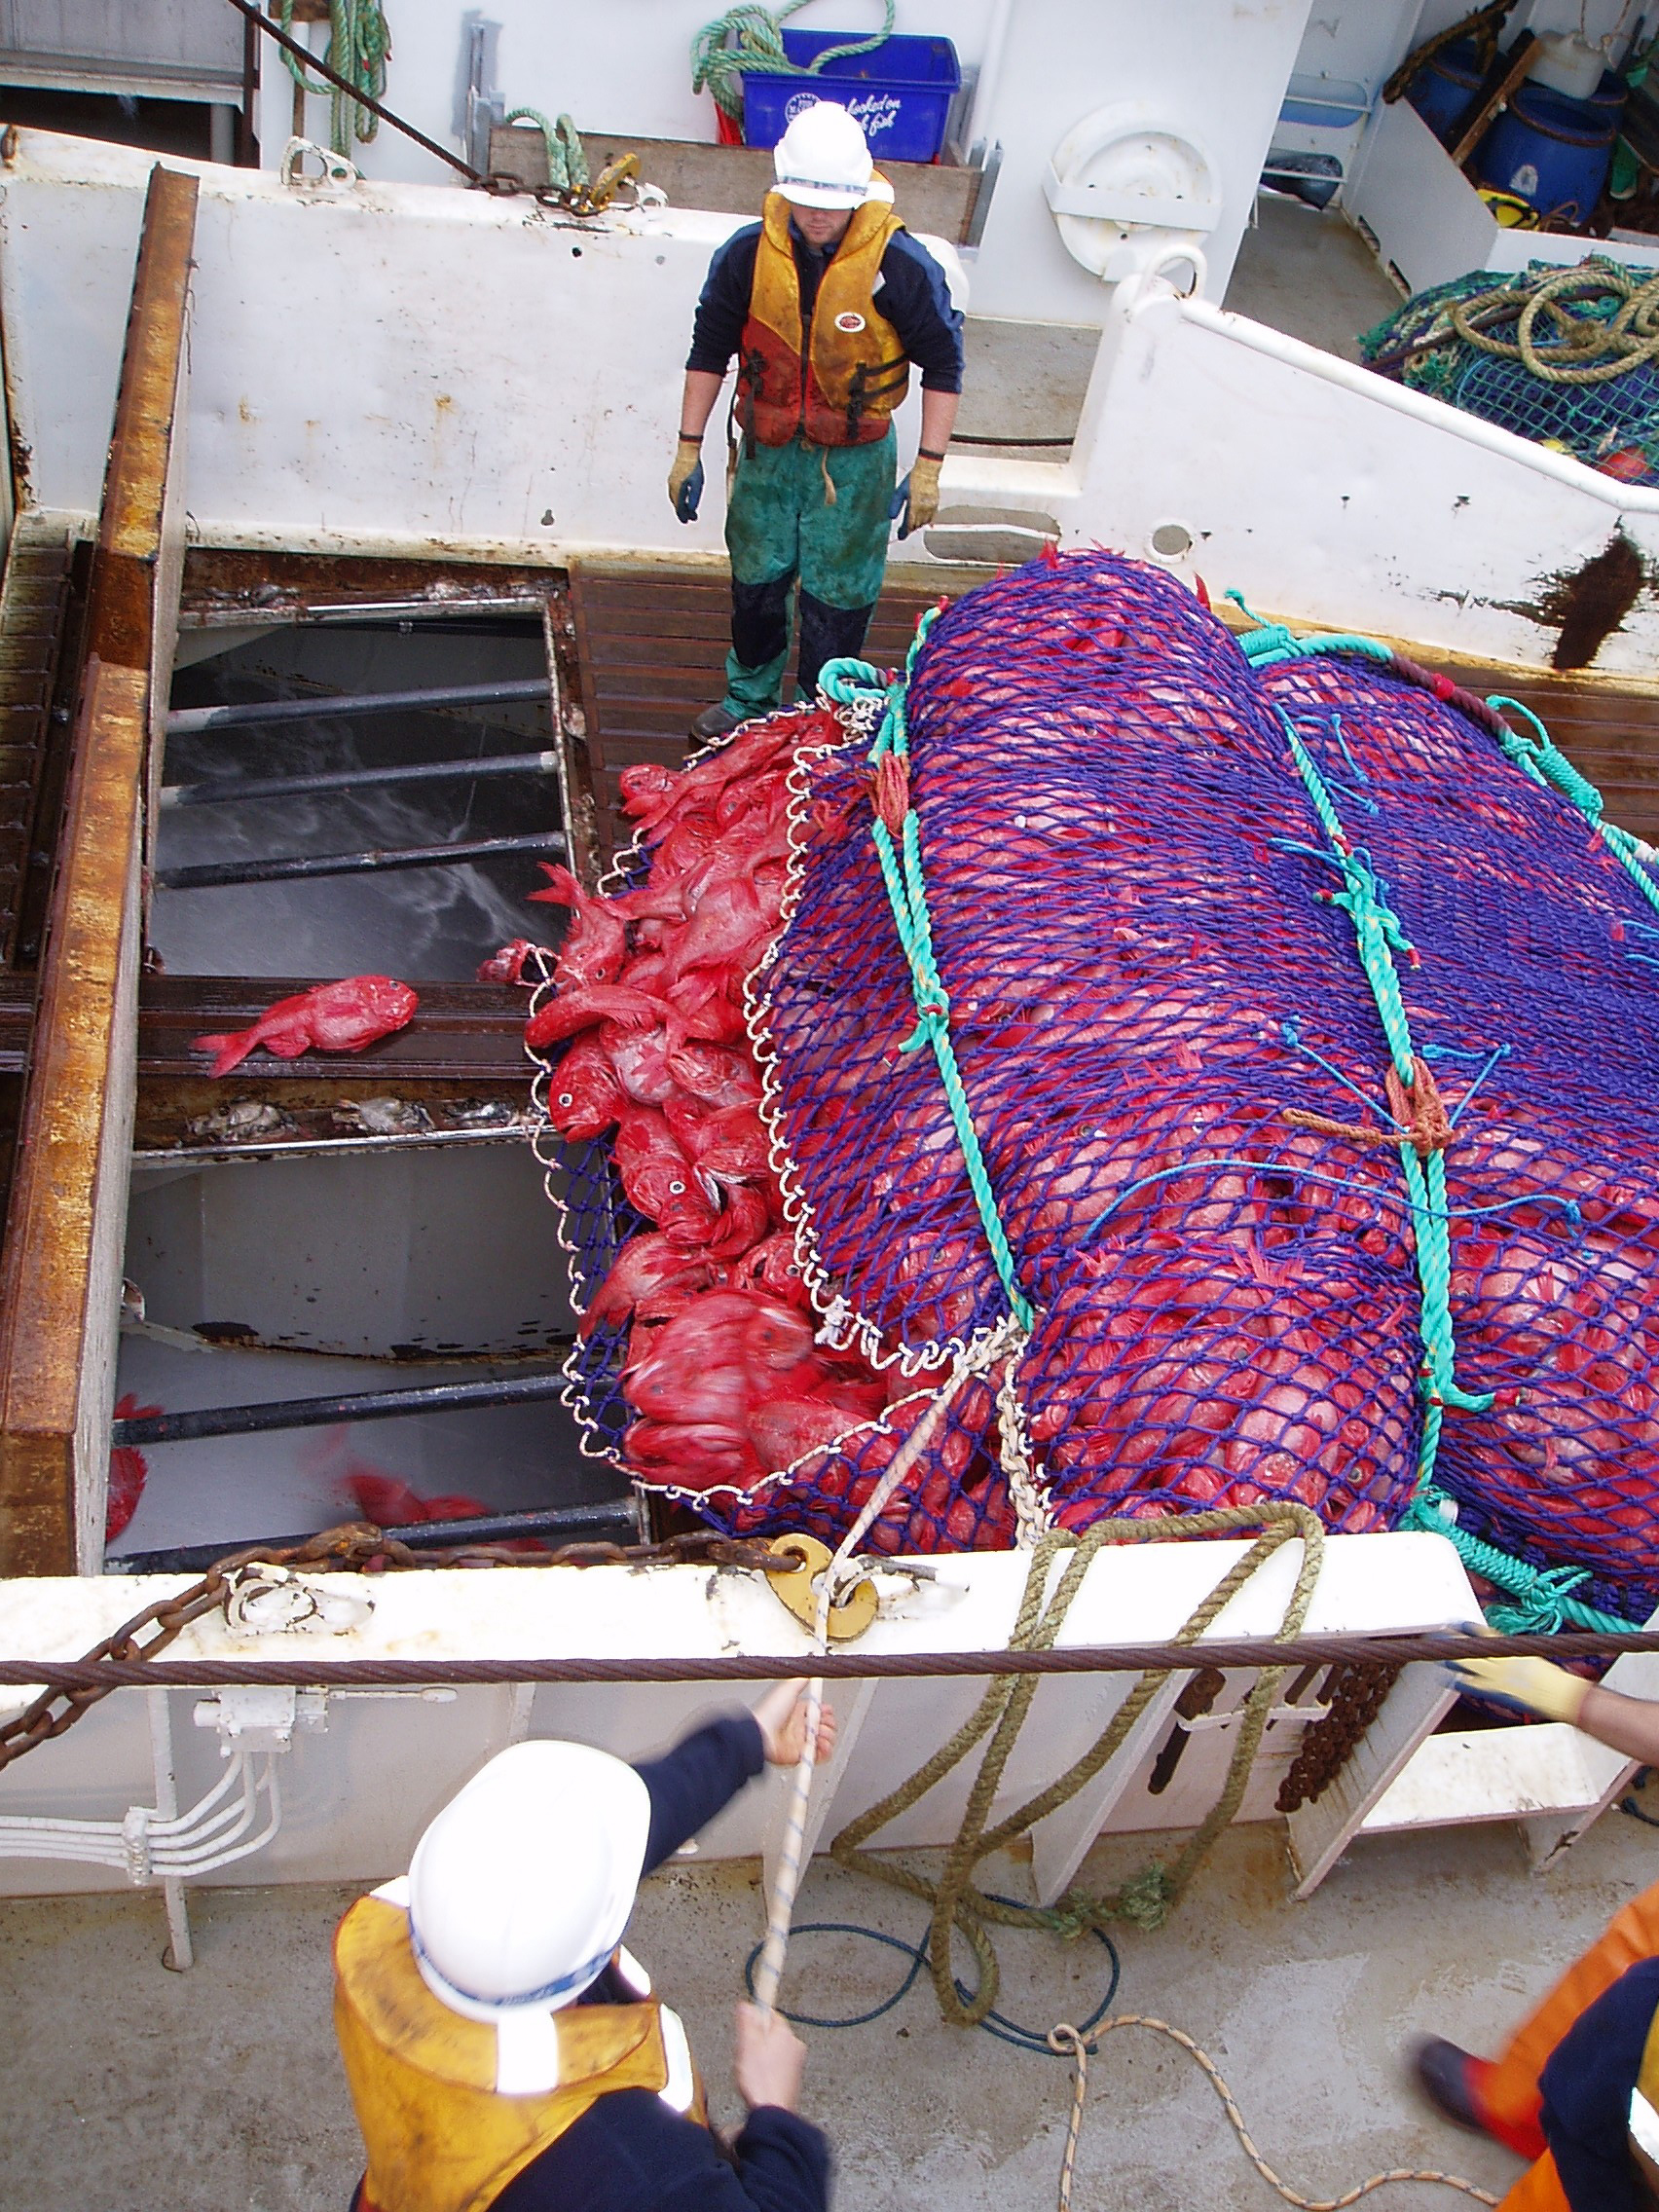 Orange roughy are regularly caught by trawlers, but because they grow so slowly, they are very vulnerable to overfishing .  CSIRO/Wikimedia Common s (CC BY 3.0)